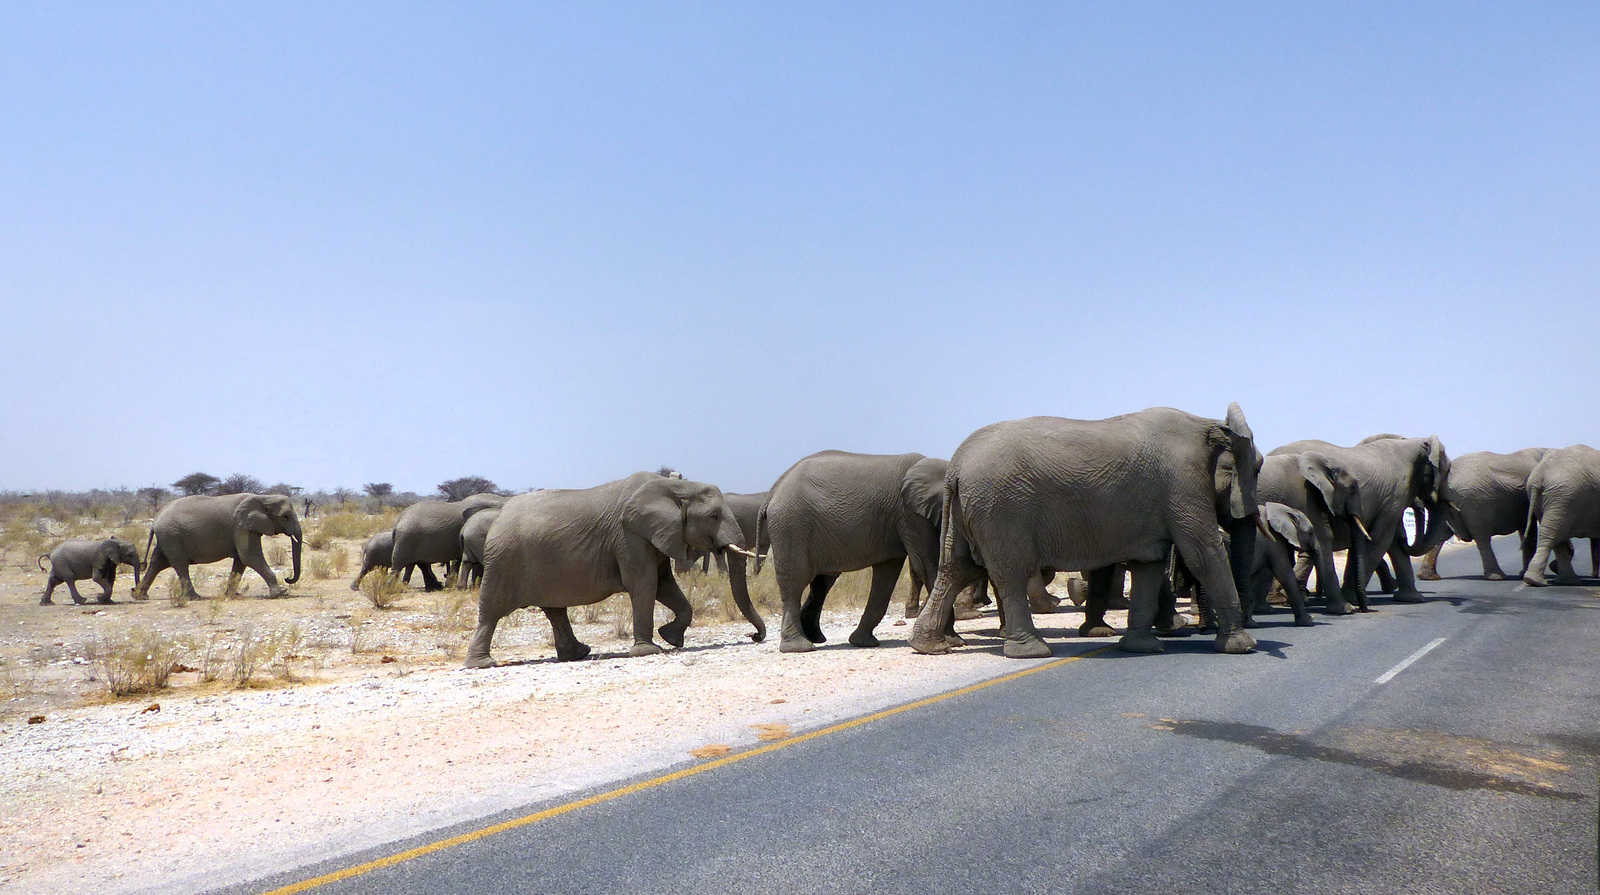 Elephant herd crossing the road in Etosha, Namibia